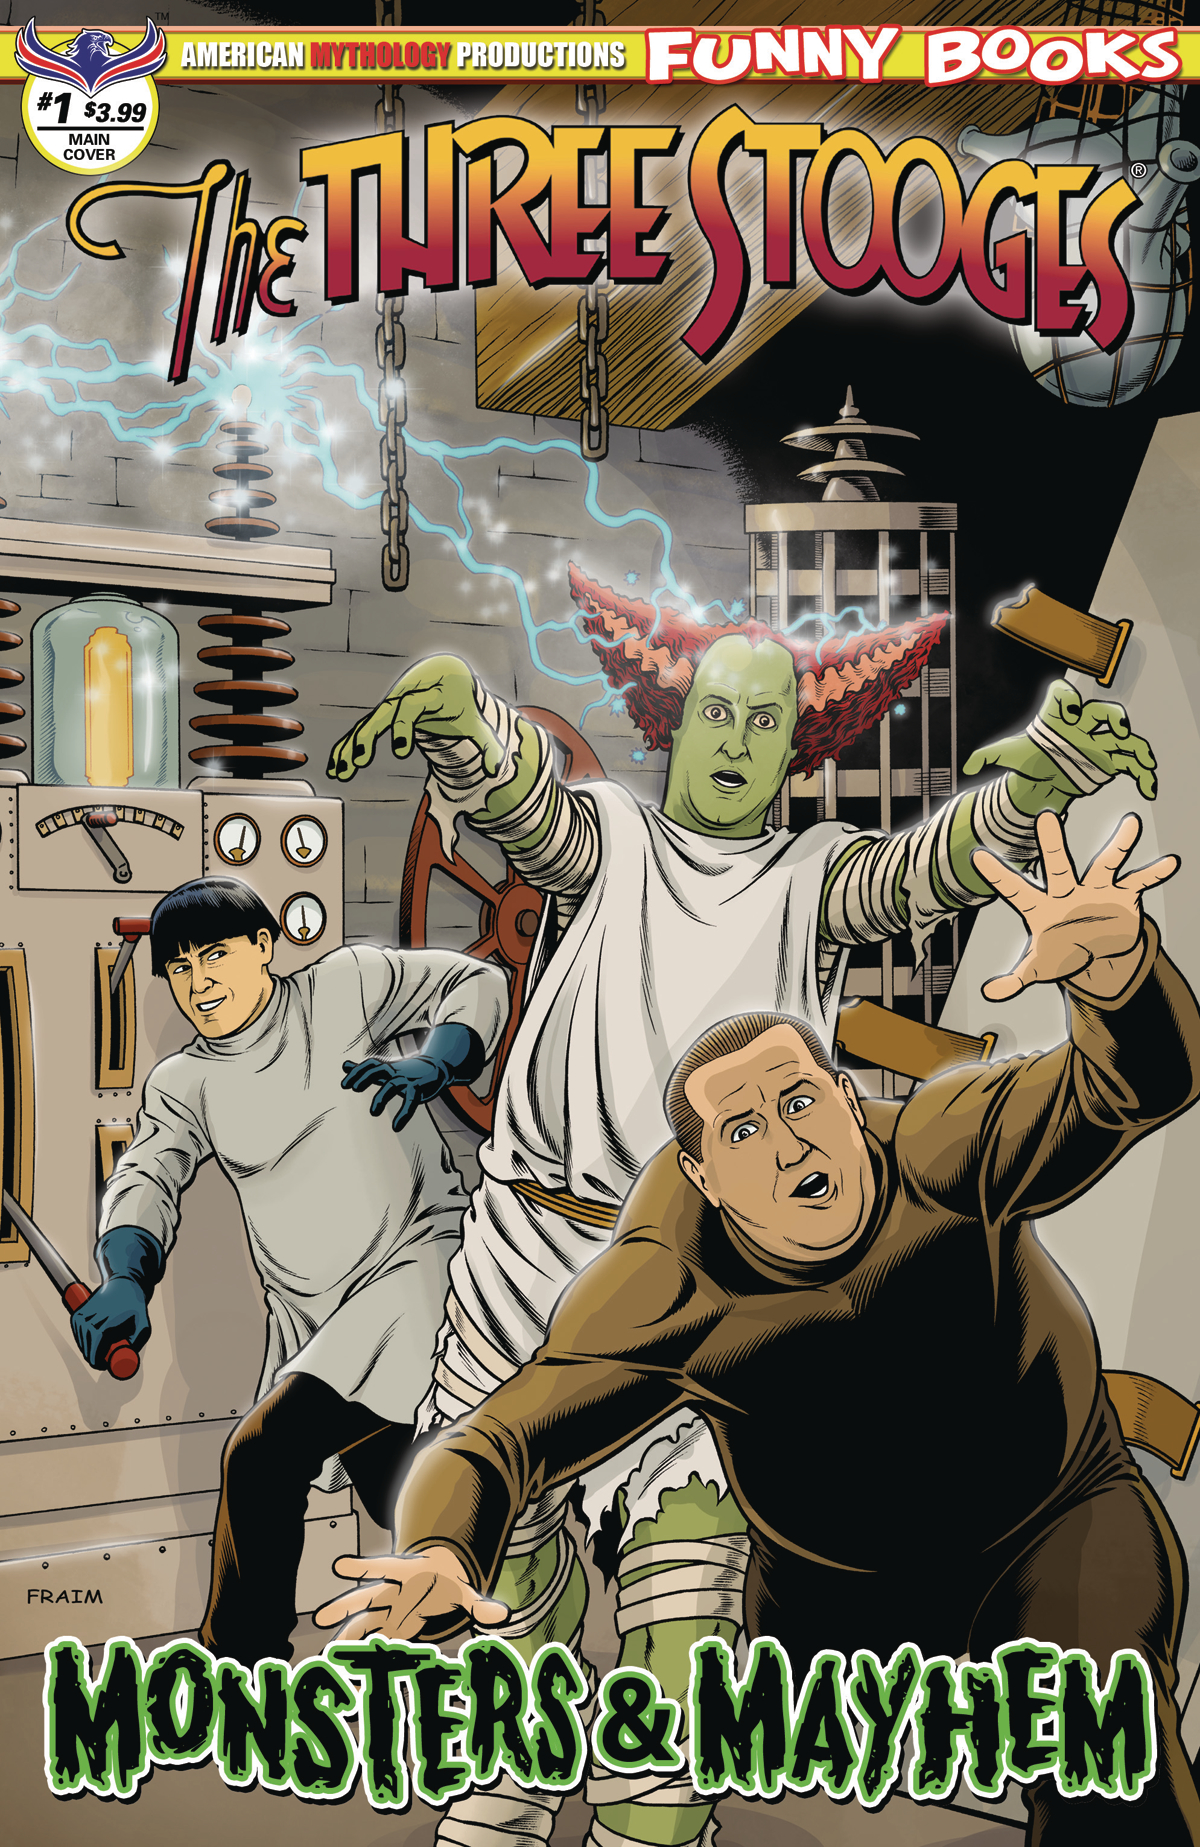 THE THREE STOOGES MONSTERS & MAYHEM #1 FRAIMS MAIN CVR